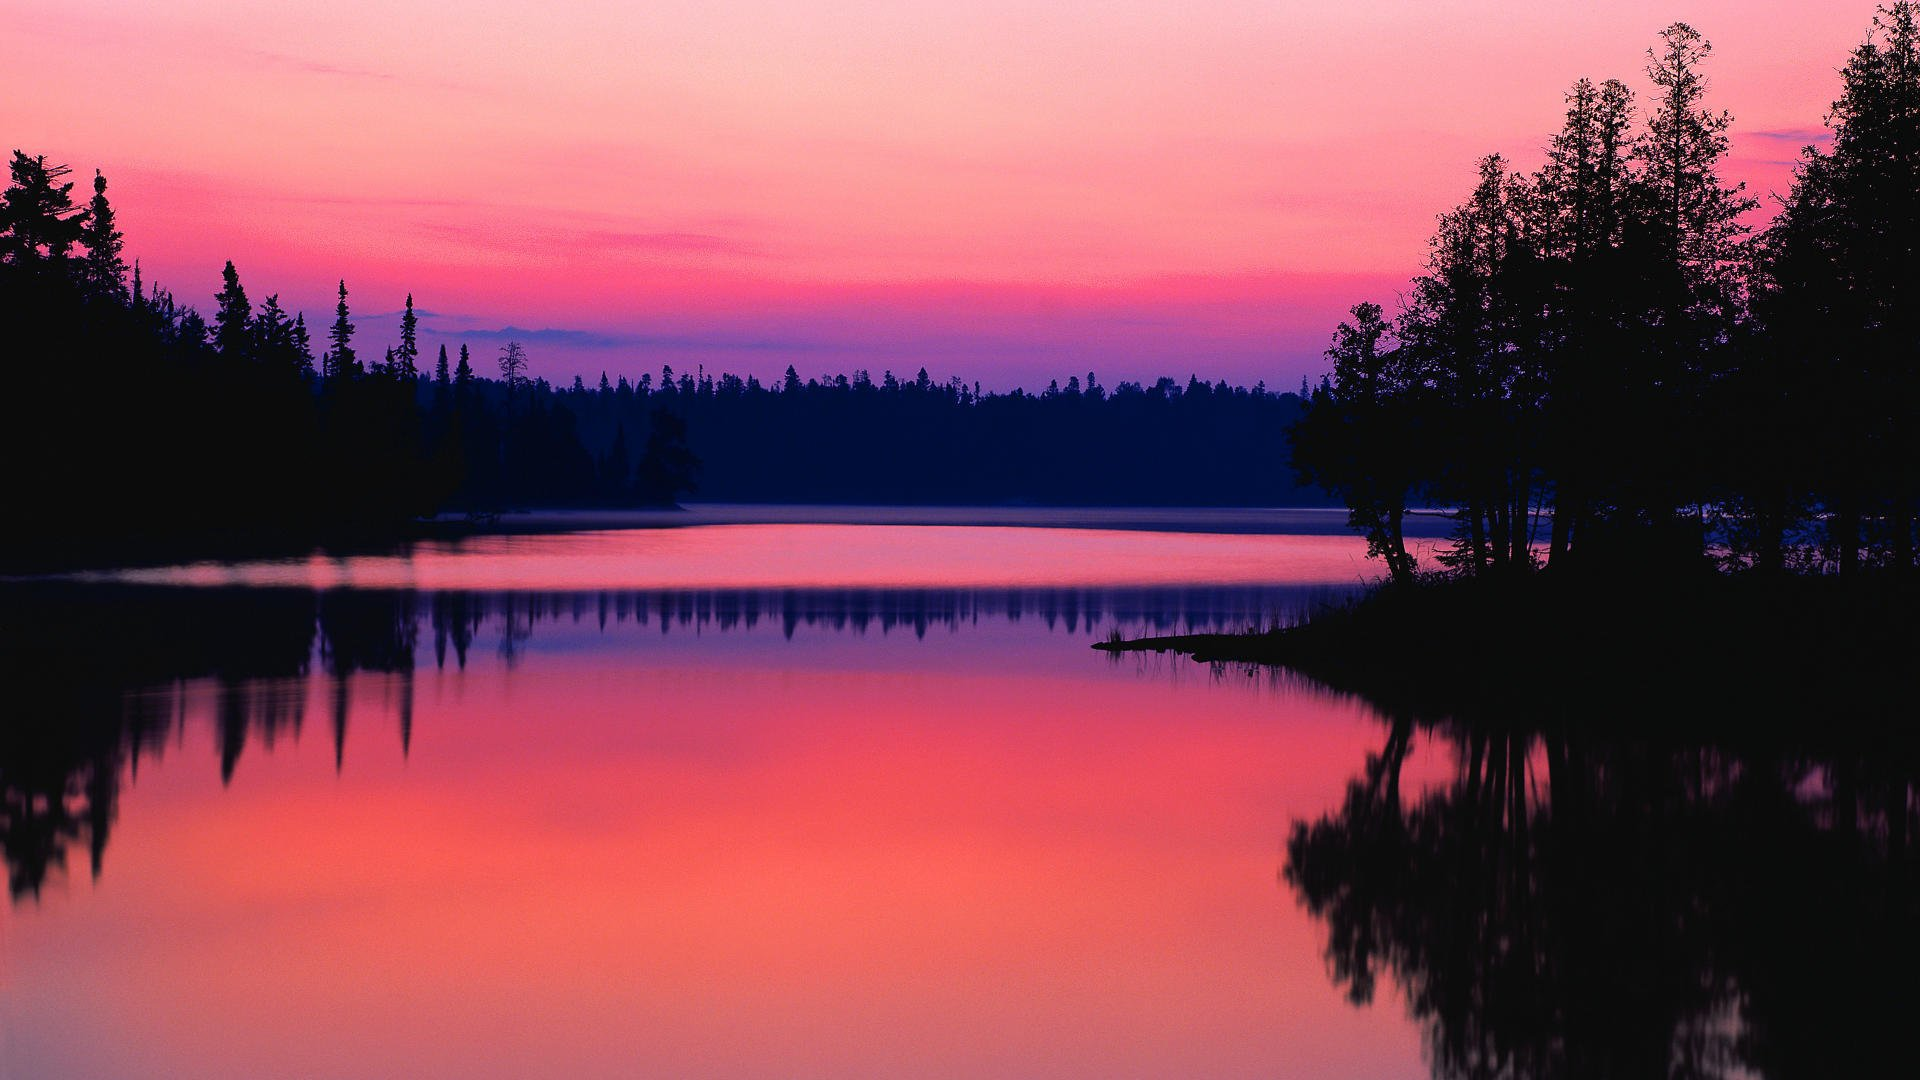 Pink Nature Wallpaper 1920x1080